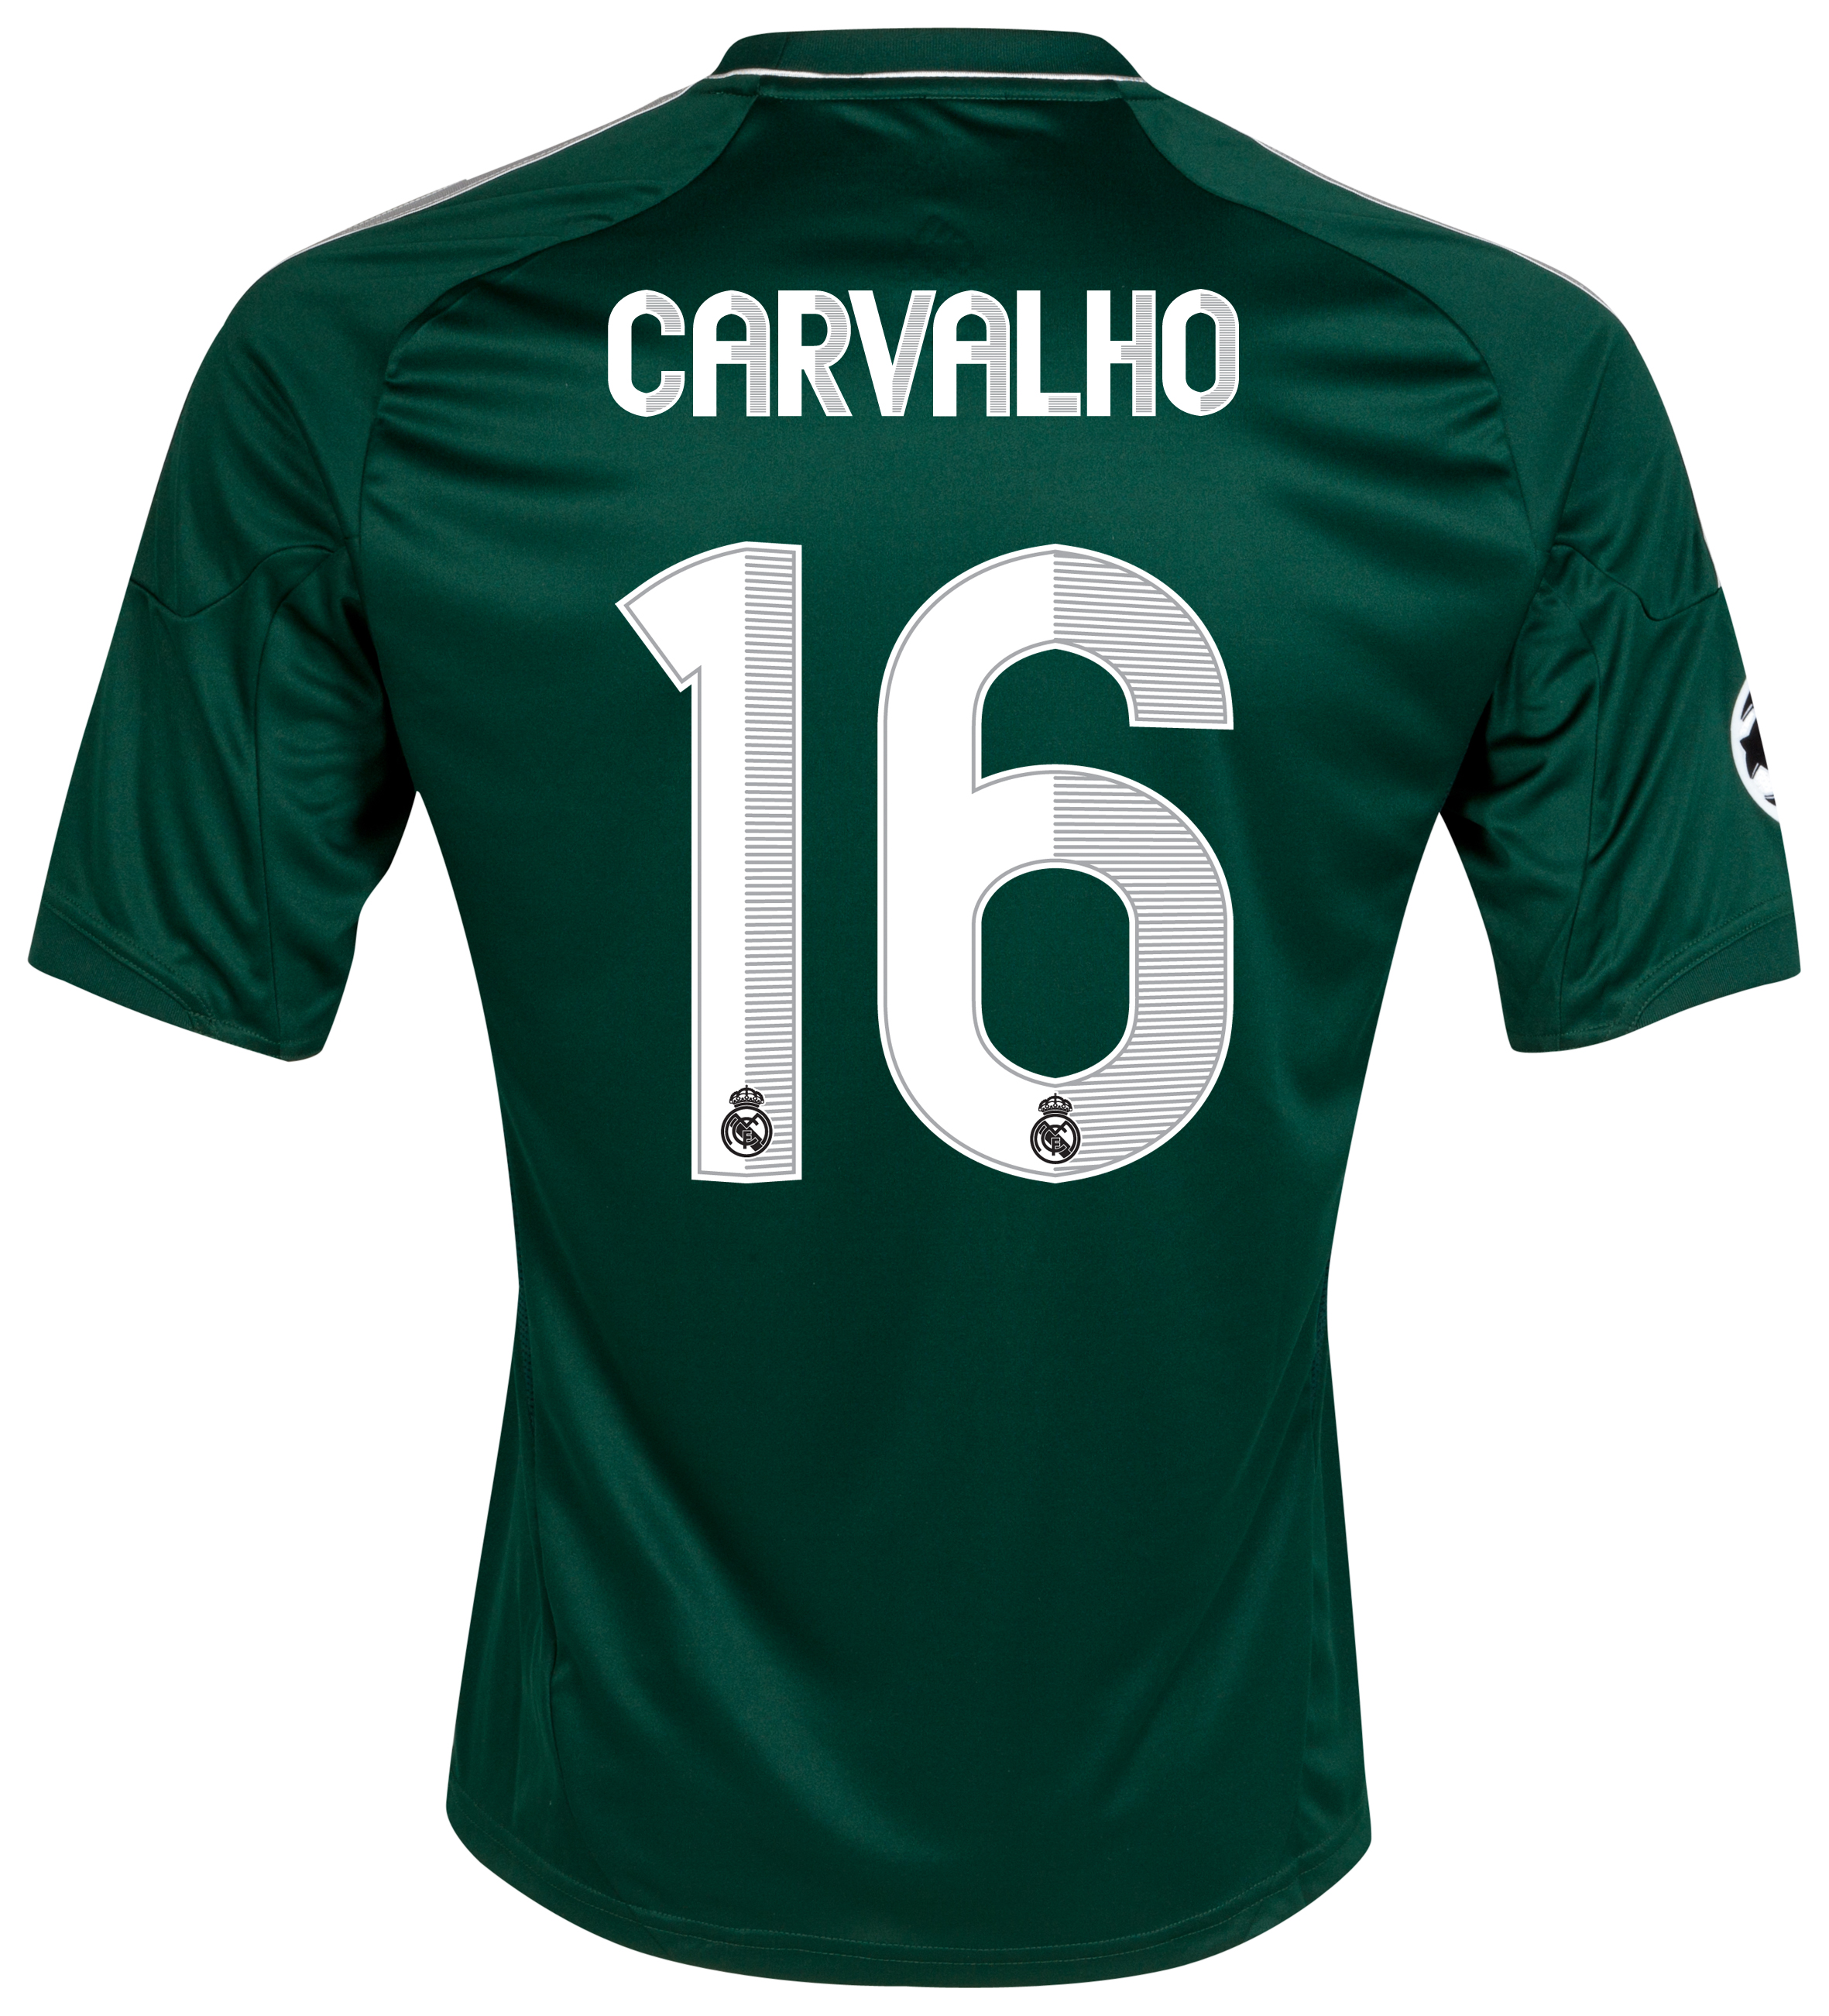 Real Madrid UEFA Champions League Third Shirt 2012/13 with Carvalho 16 printing